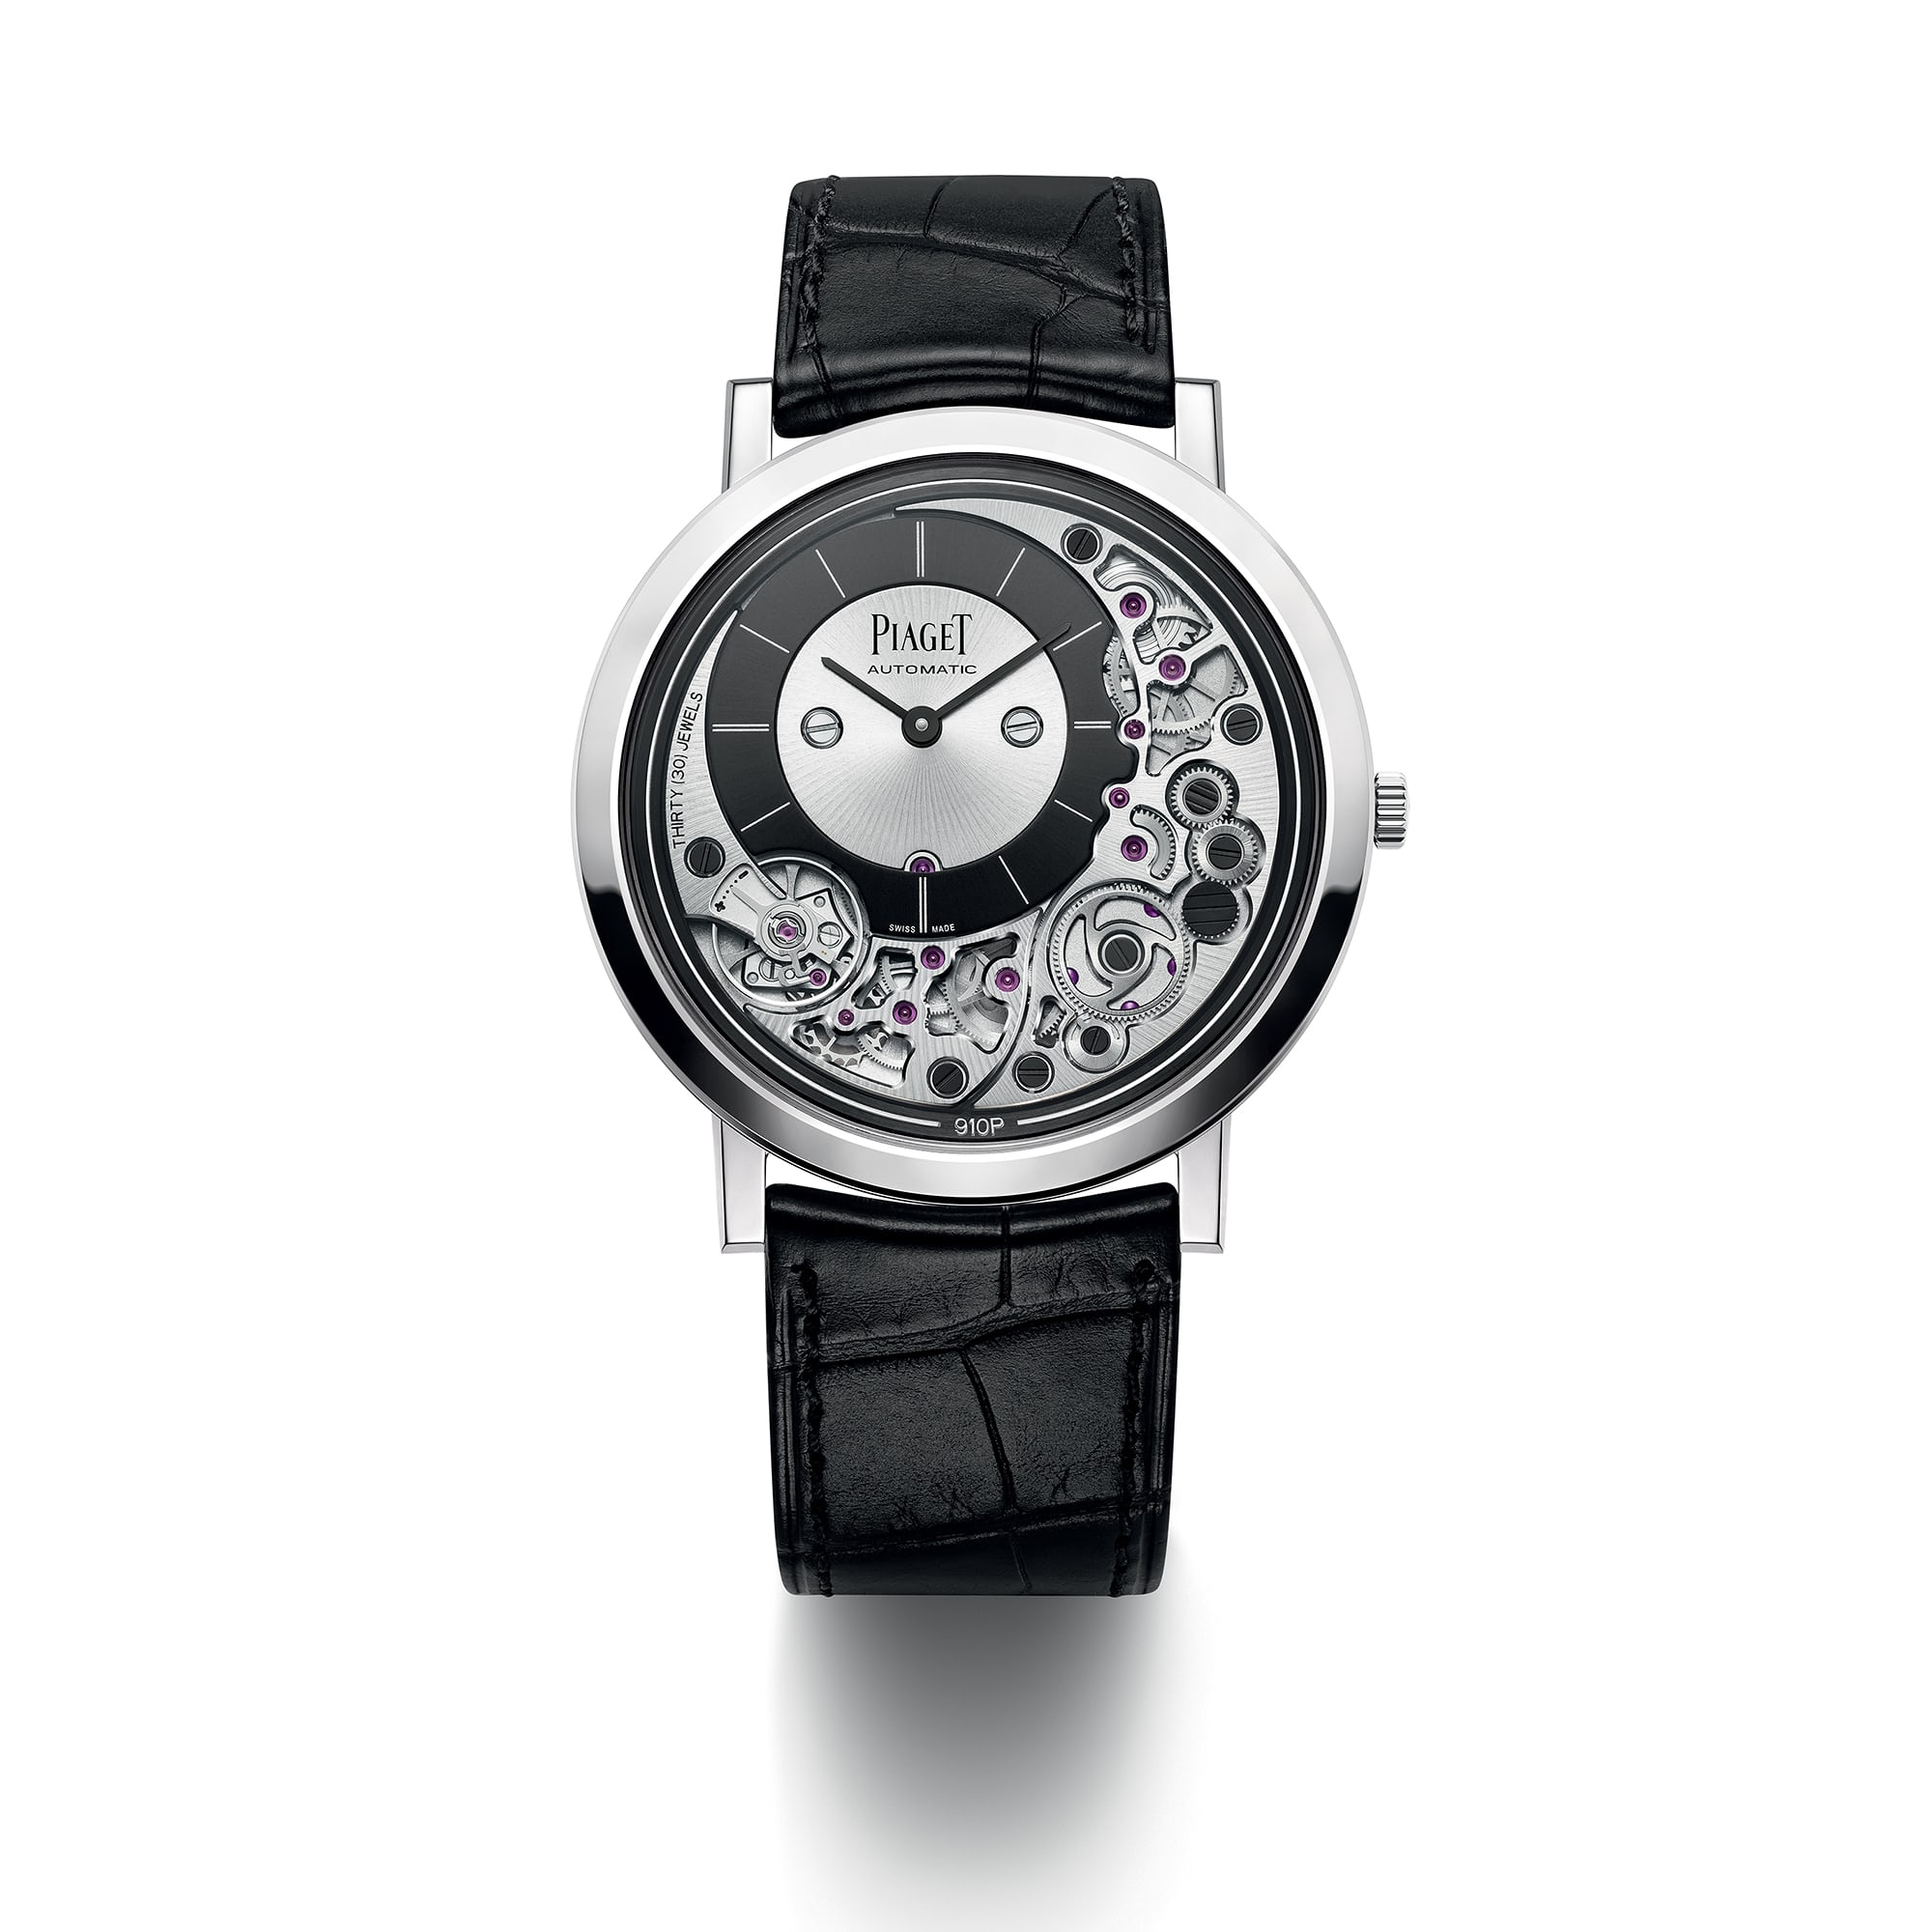 <p>The Piaget Altiplano Ultimate 910P in white gold. </p>